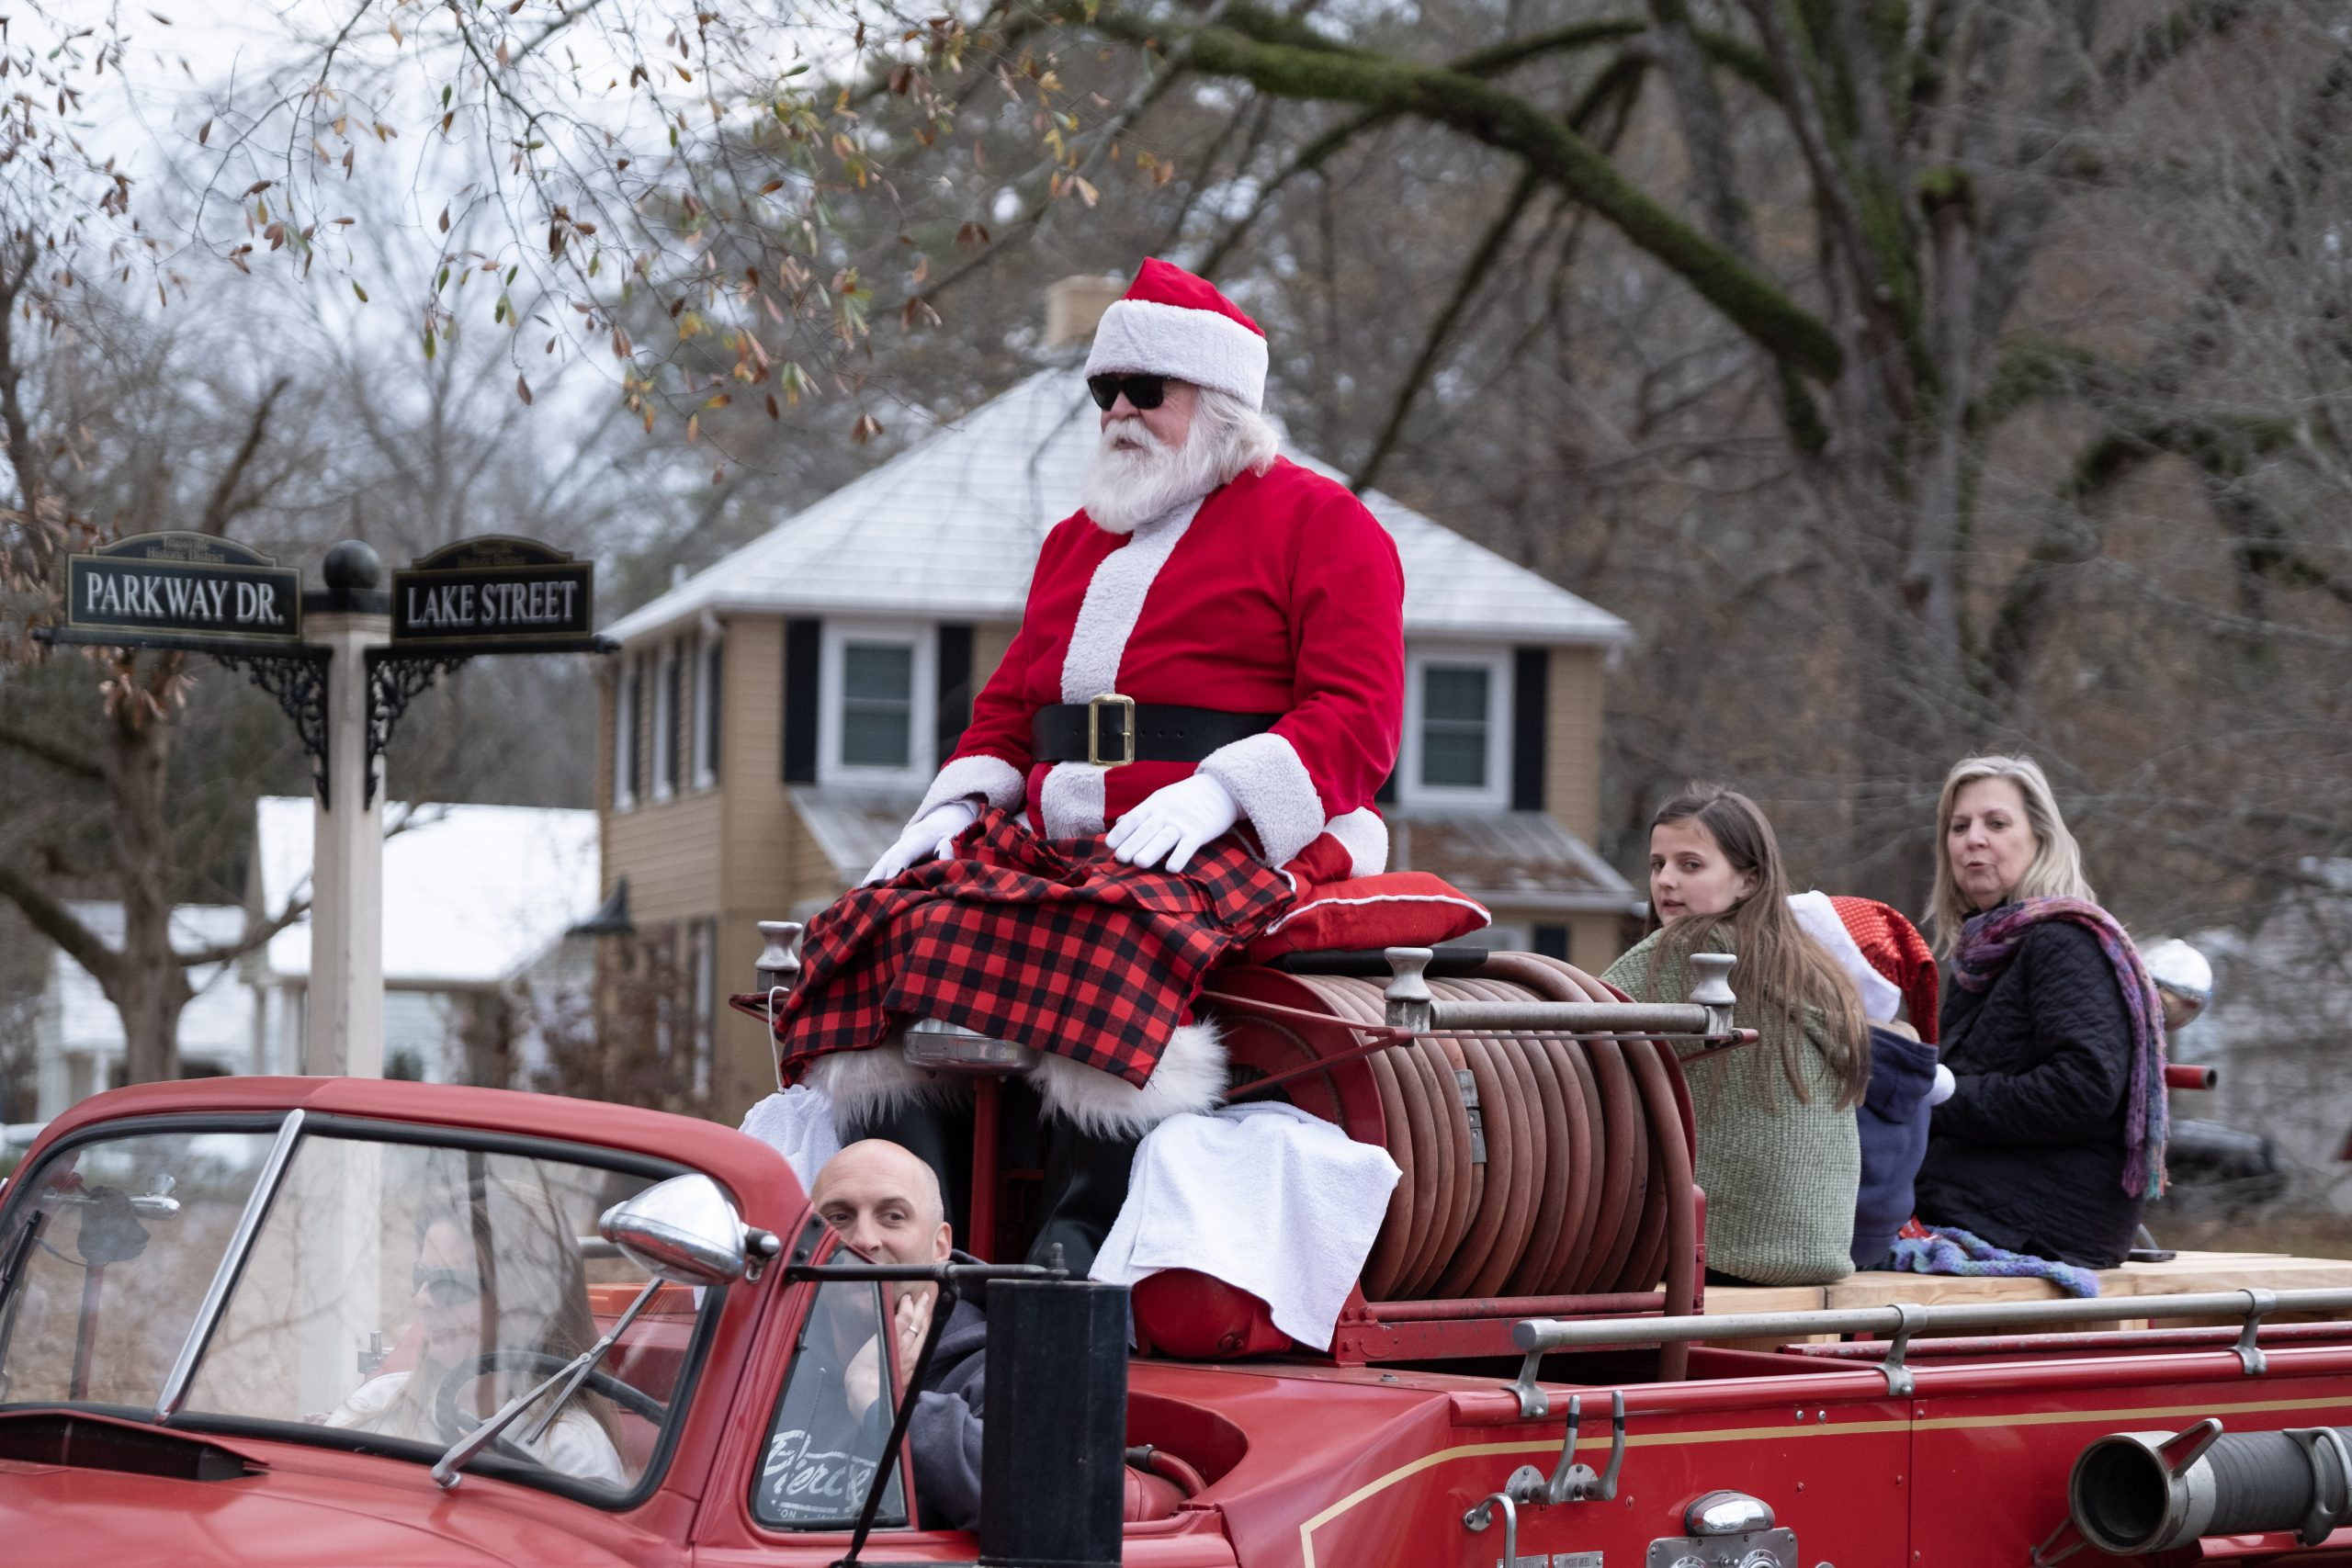 Mark your calendars: Trussville's Christmas tree lighting and parade scheduled